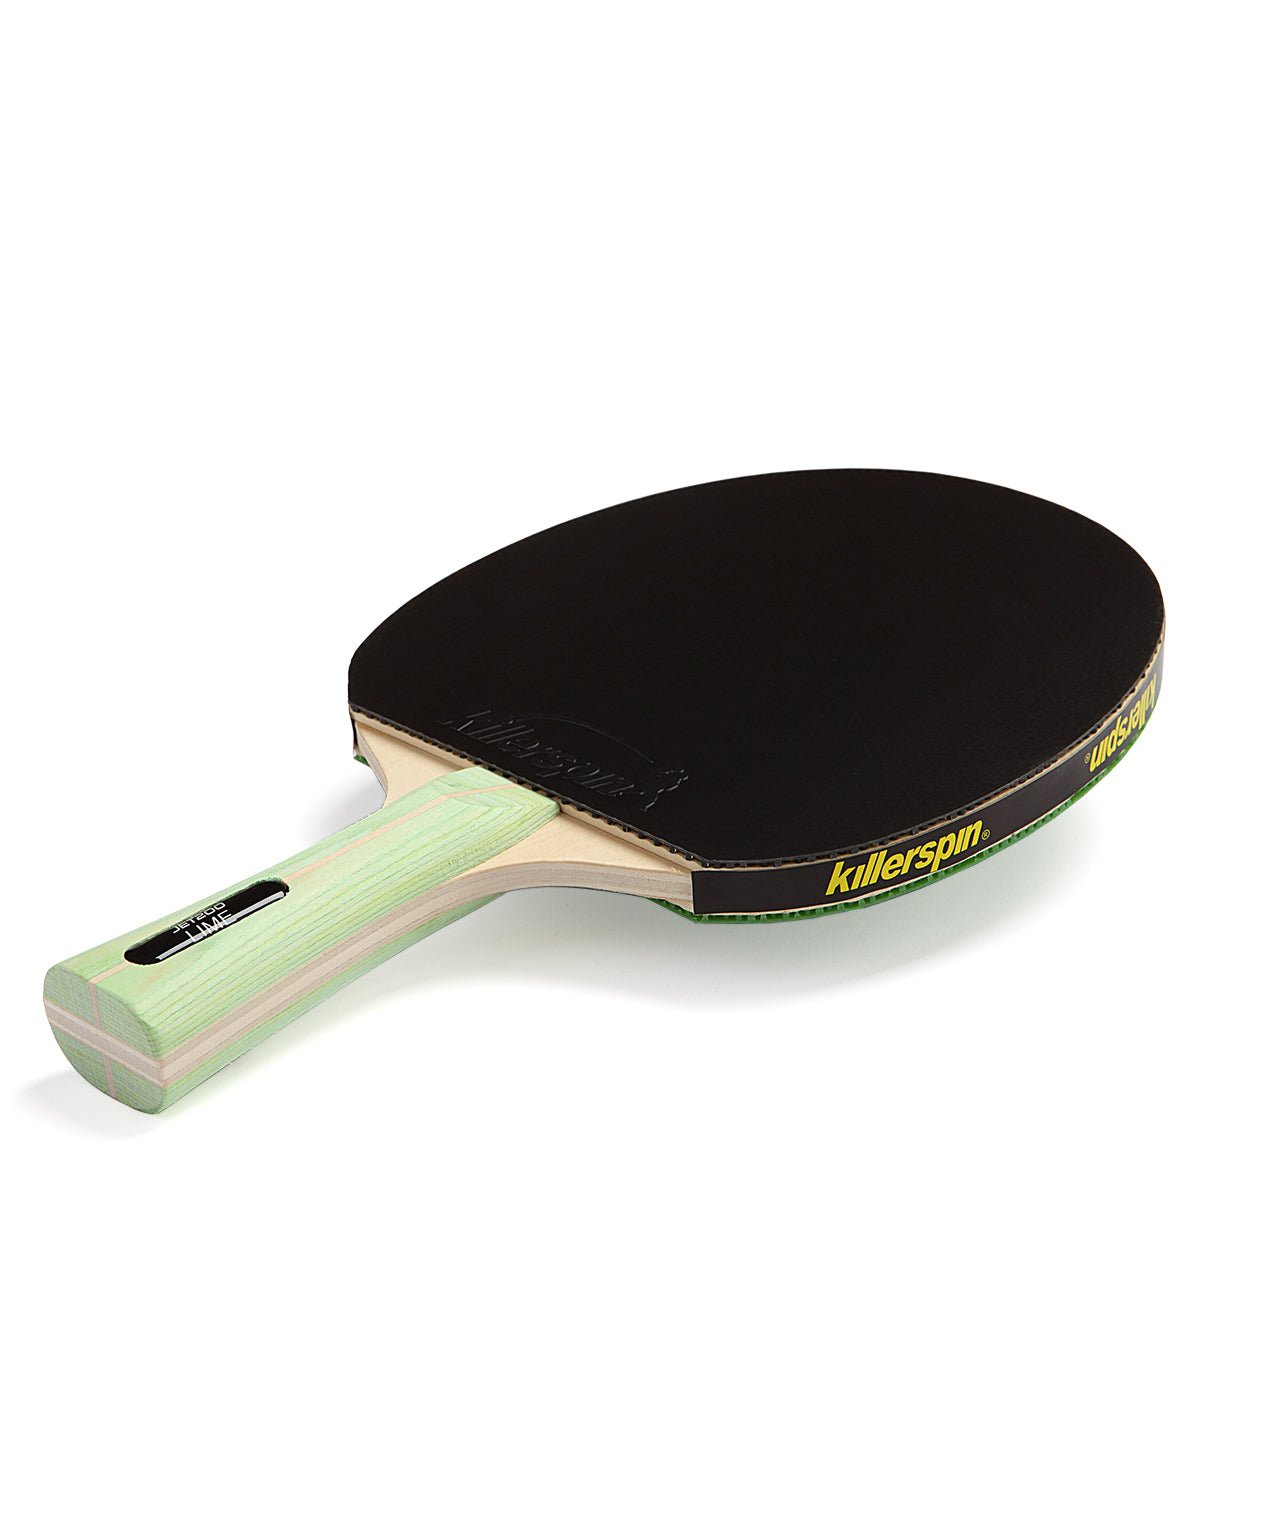 Killerspin Ping Pong Paddle Jet200 Lime - Black Rubber